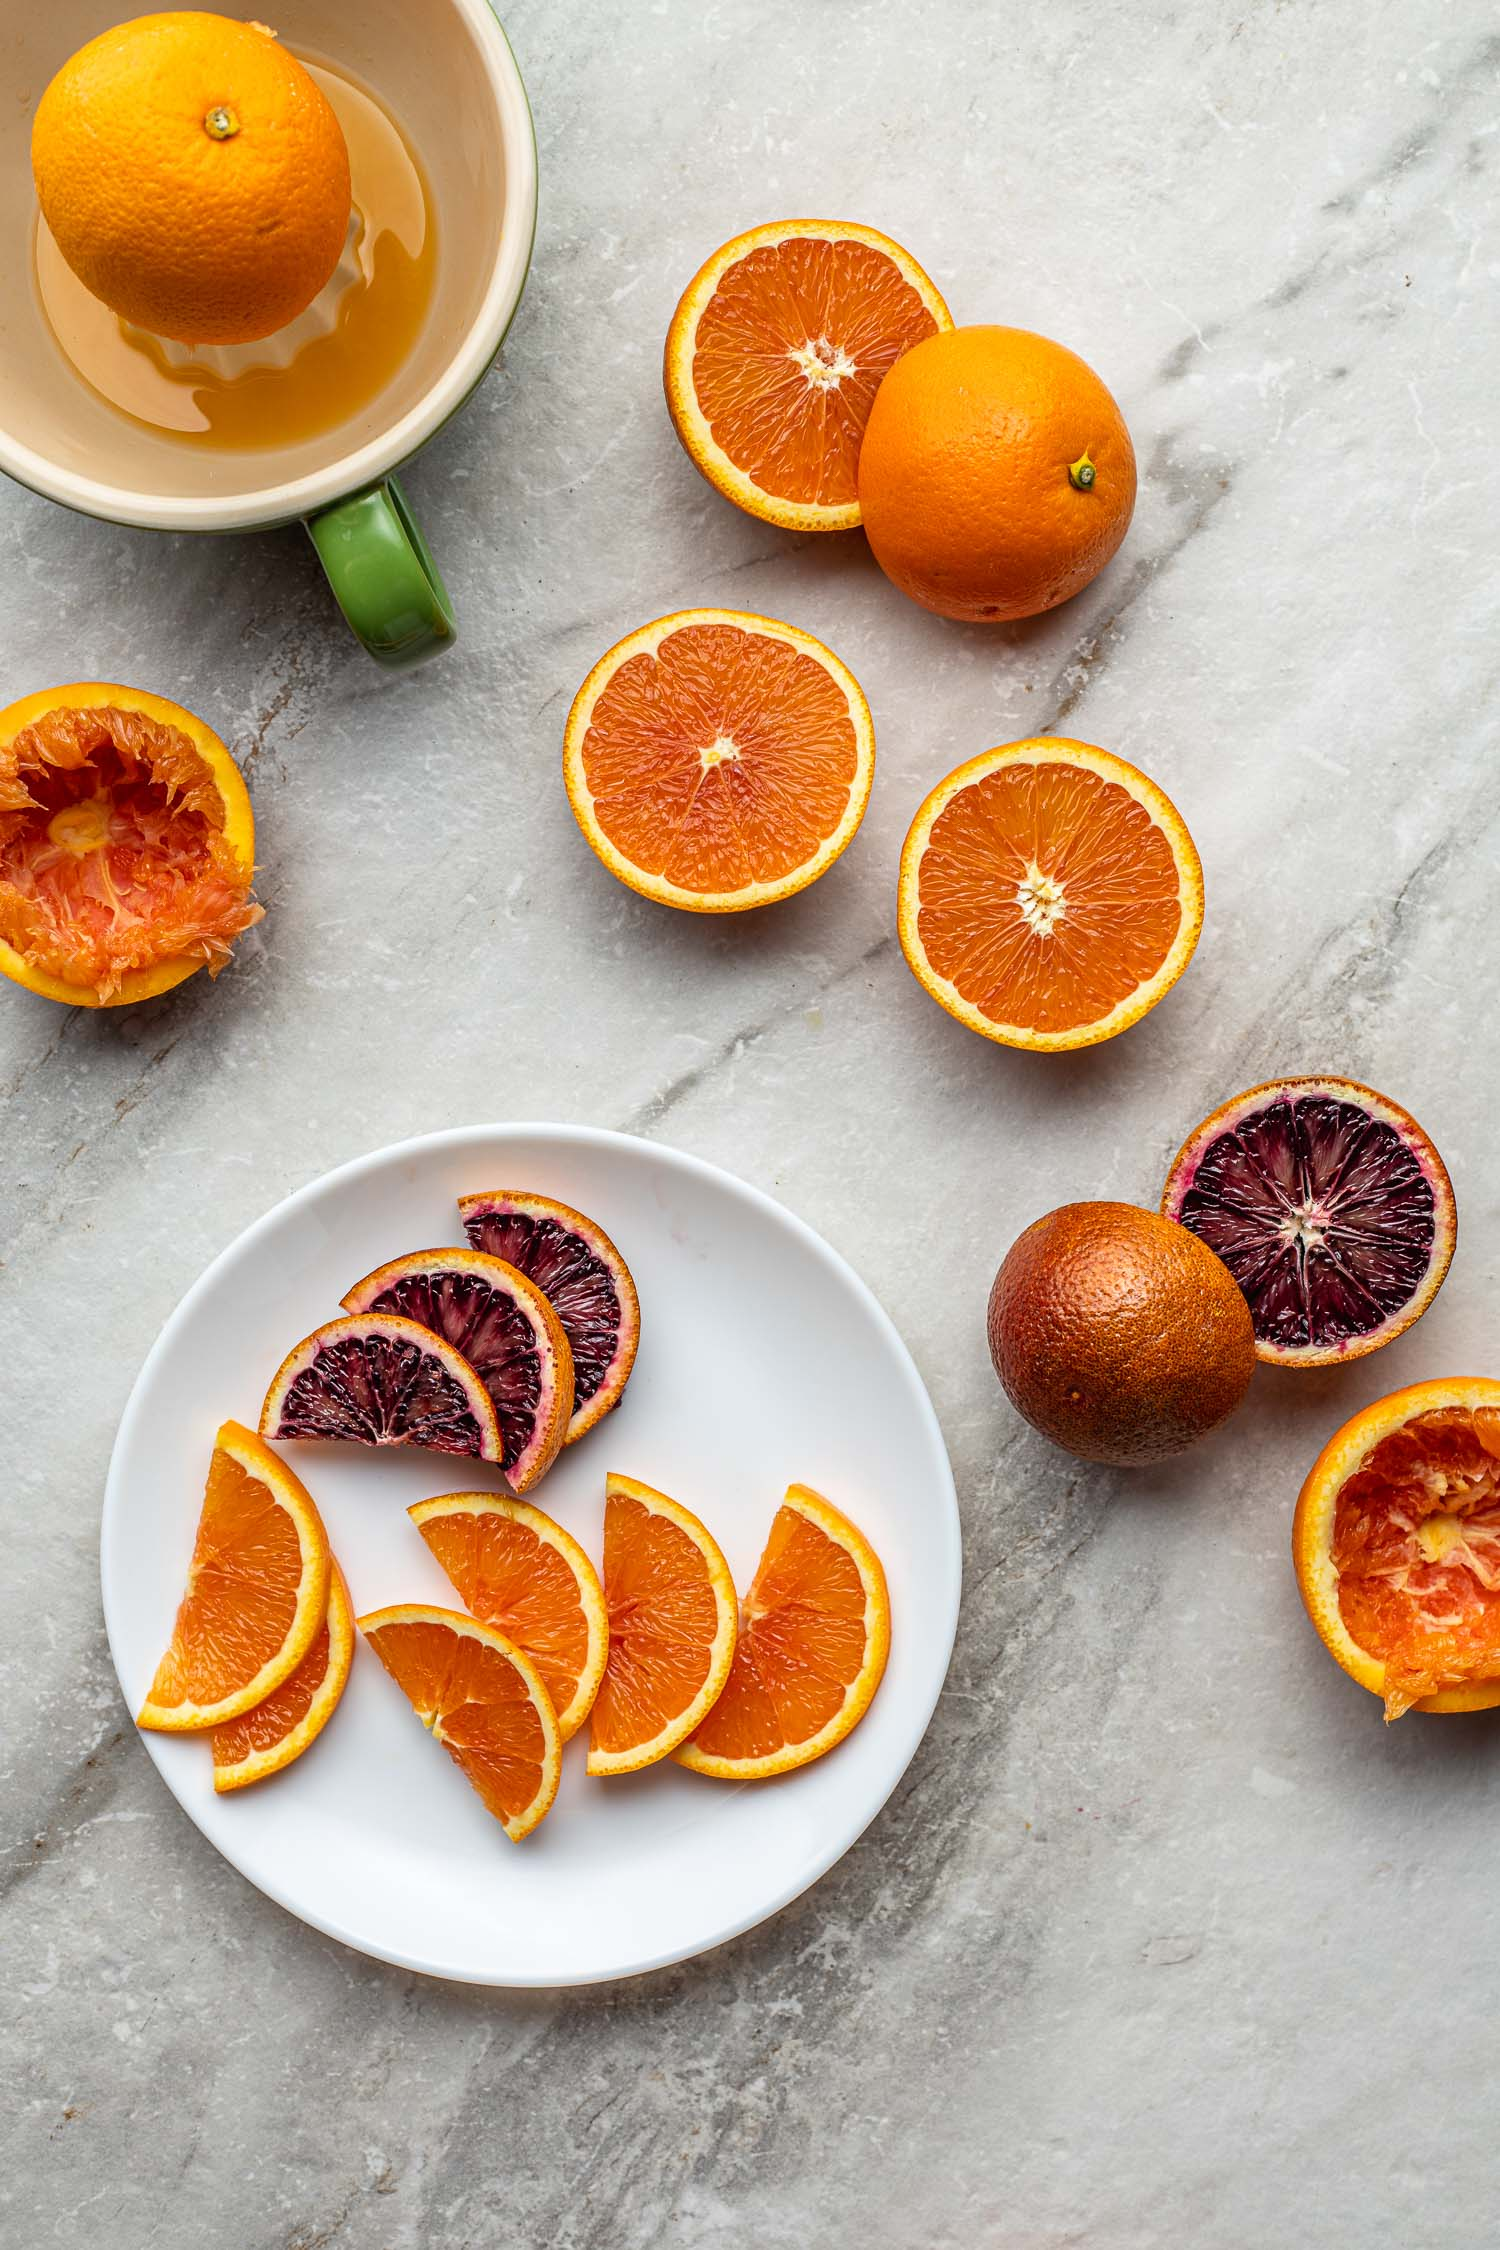 blood red oranges and regular oranges sliced to make mixed drinks